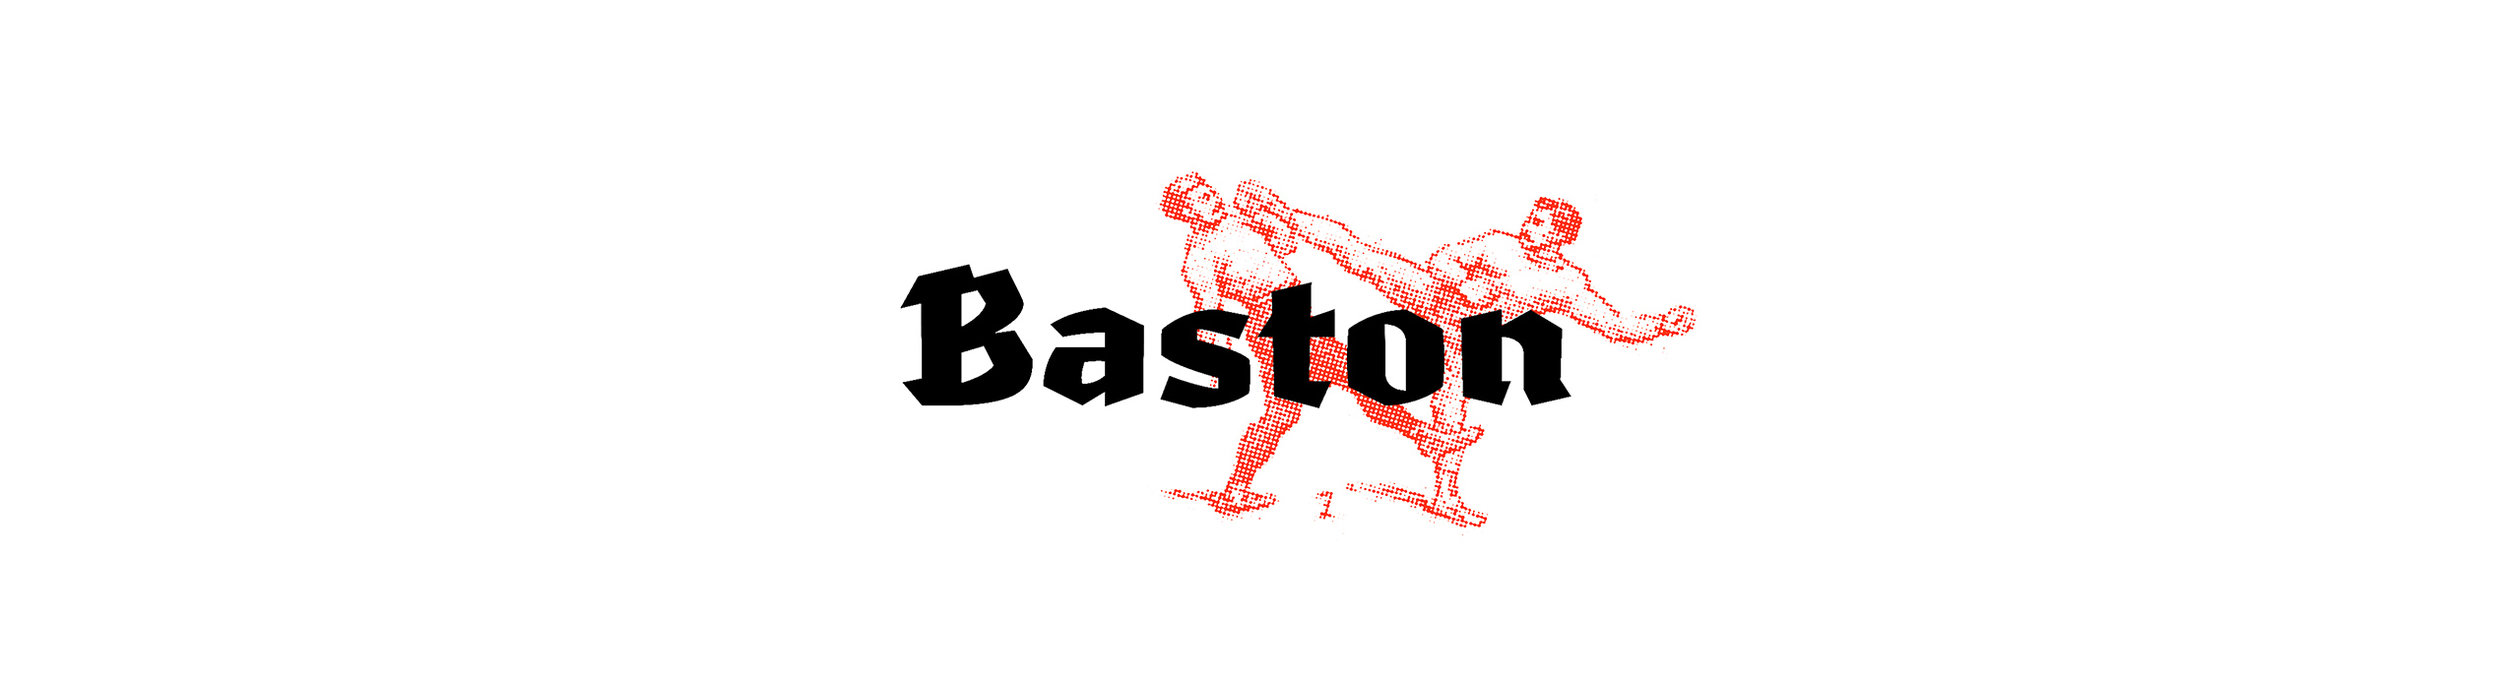 baston_logo.jpg